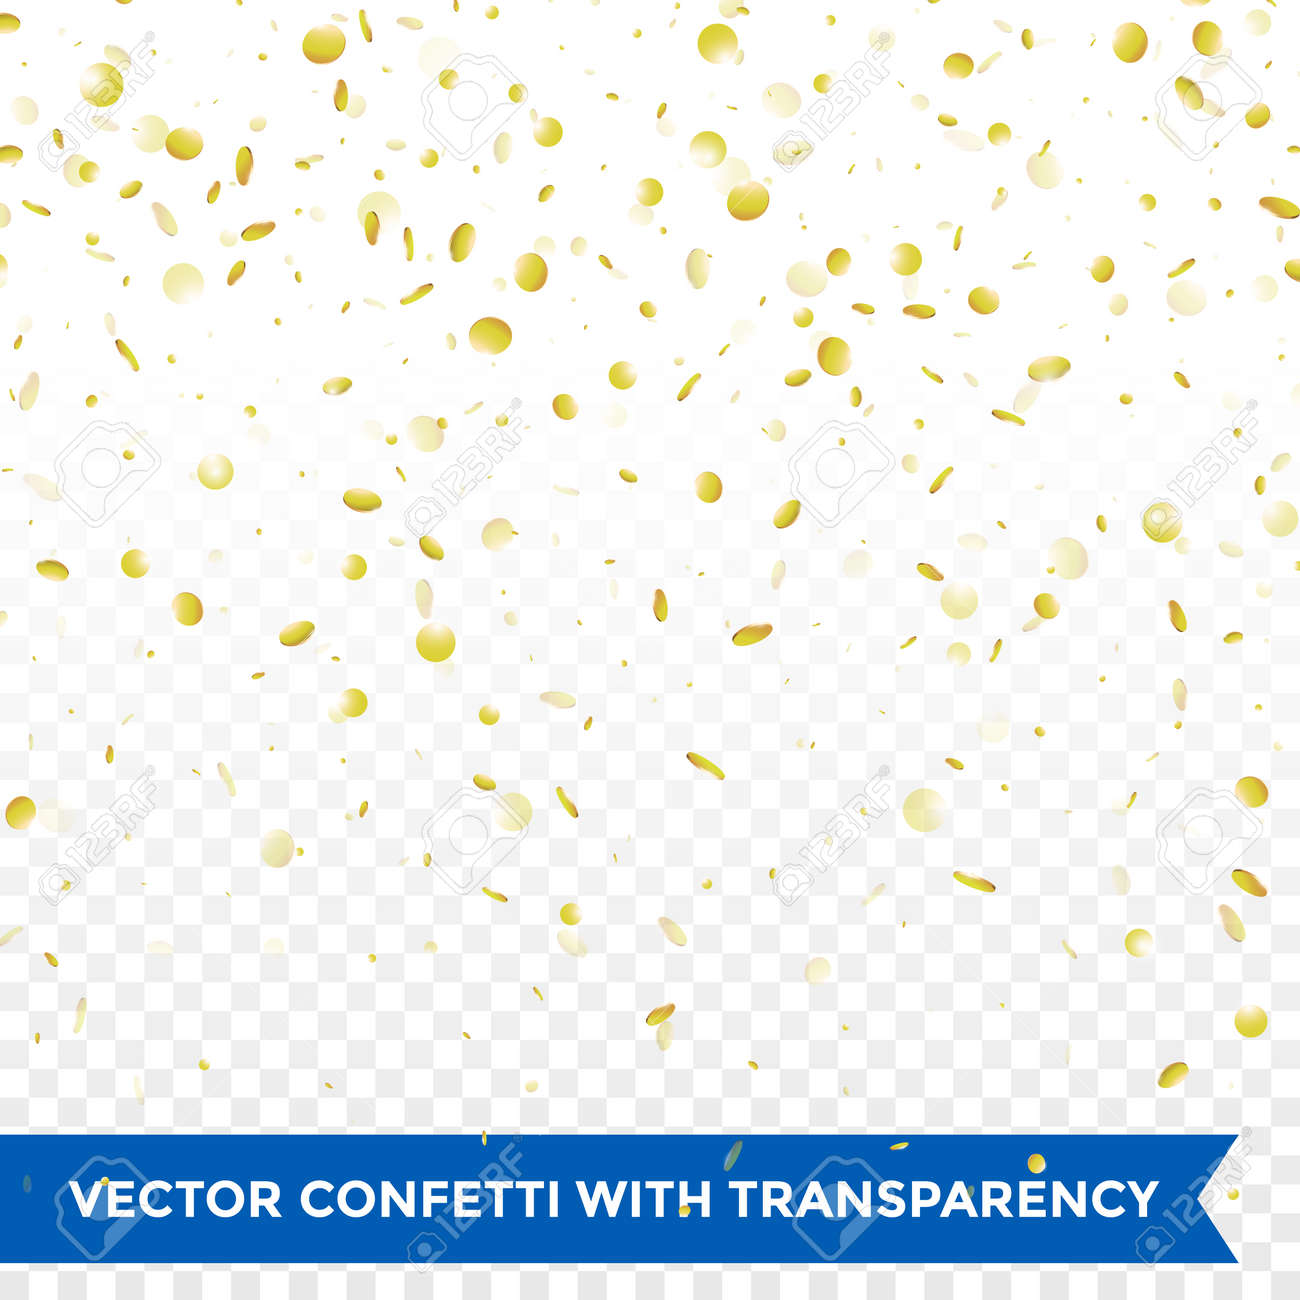 Confetti background vector golden confetti background - Gold Confetti Rain Festive Holiday Background Vector Golden Paper Foil Sequins Falling Down Isolated On